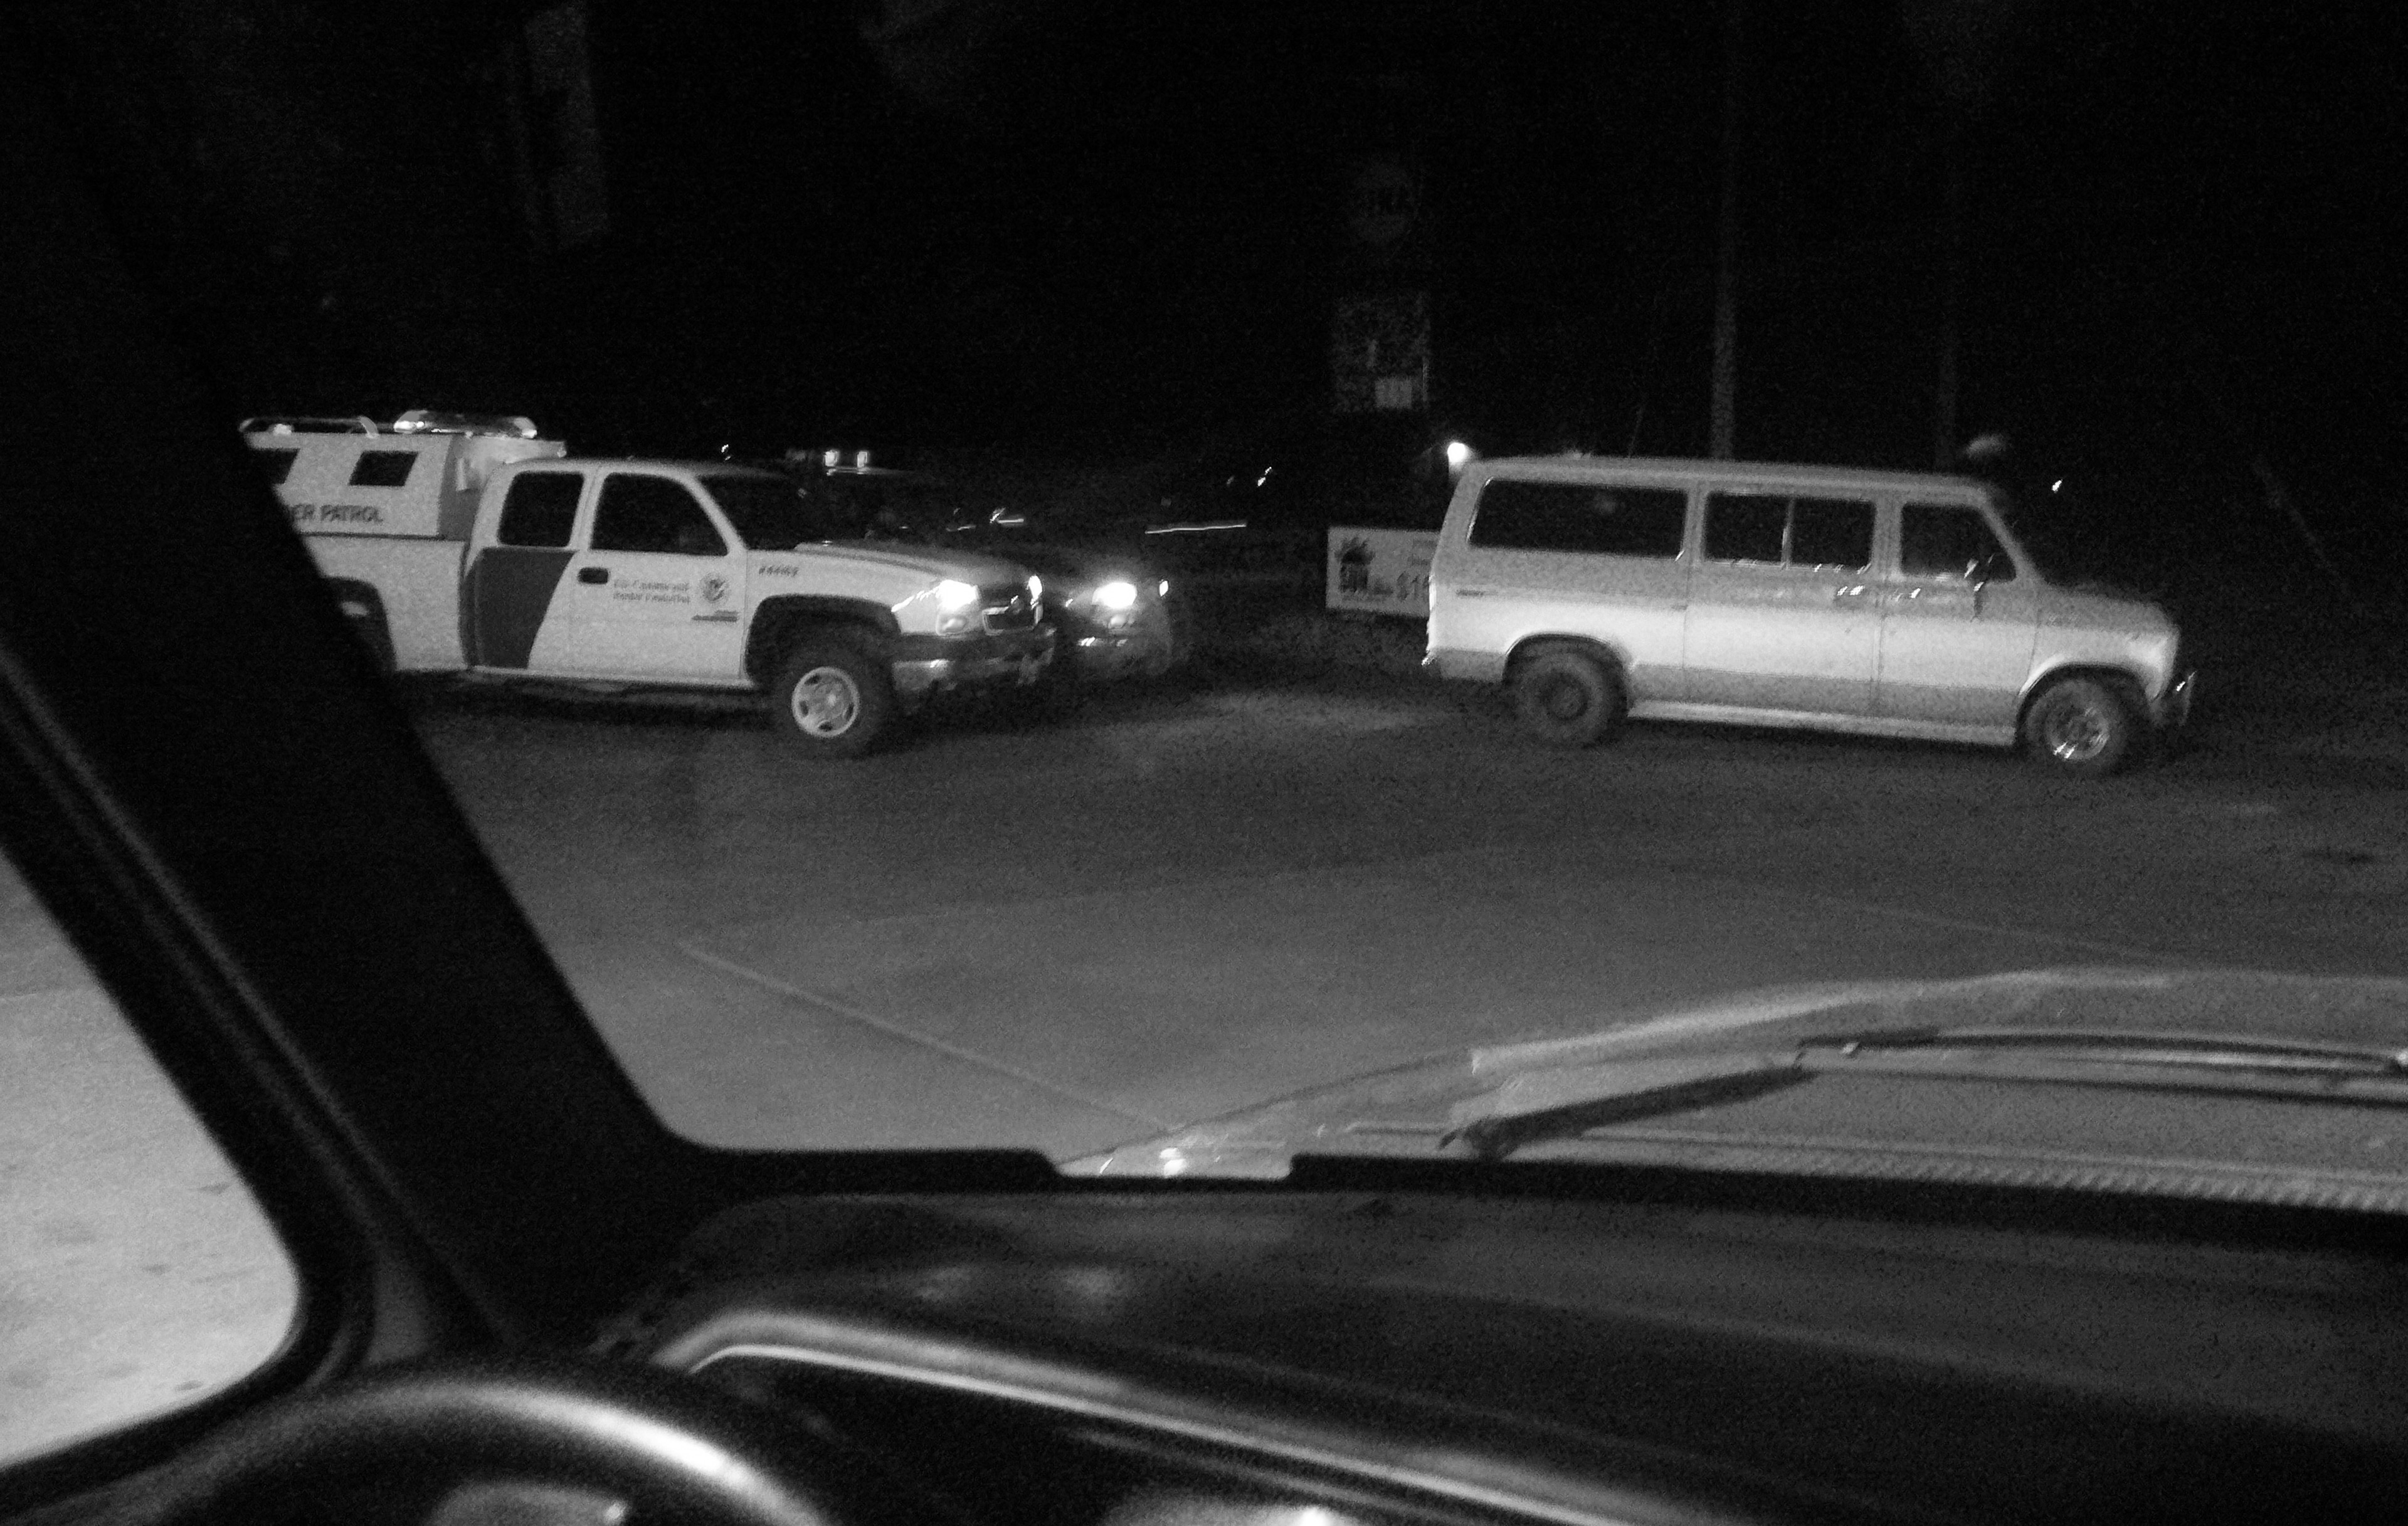 A border patrol vehicle behind a van